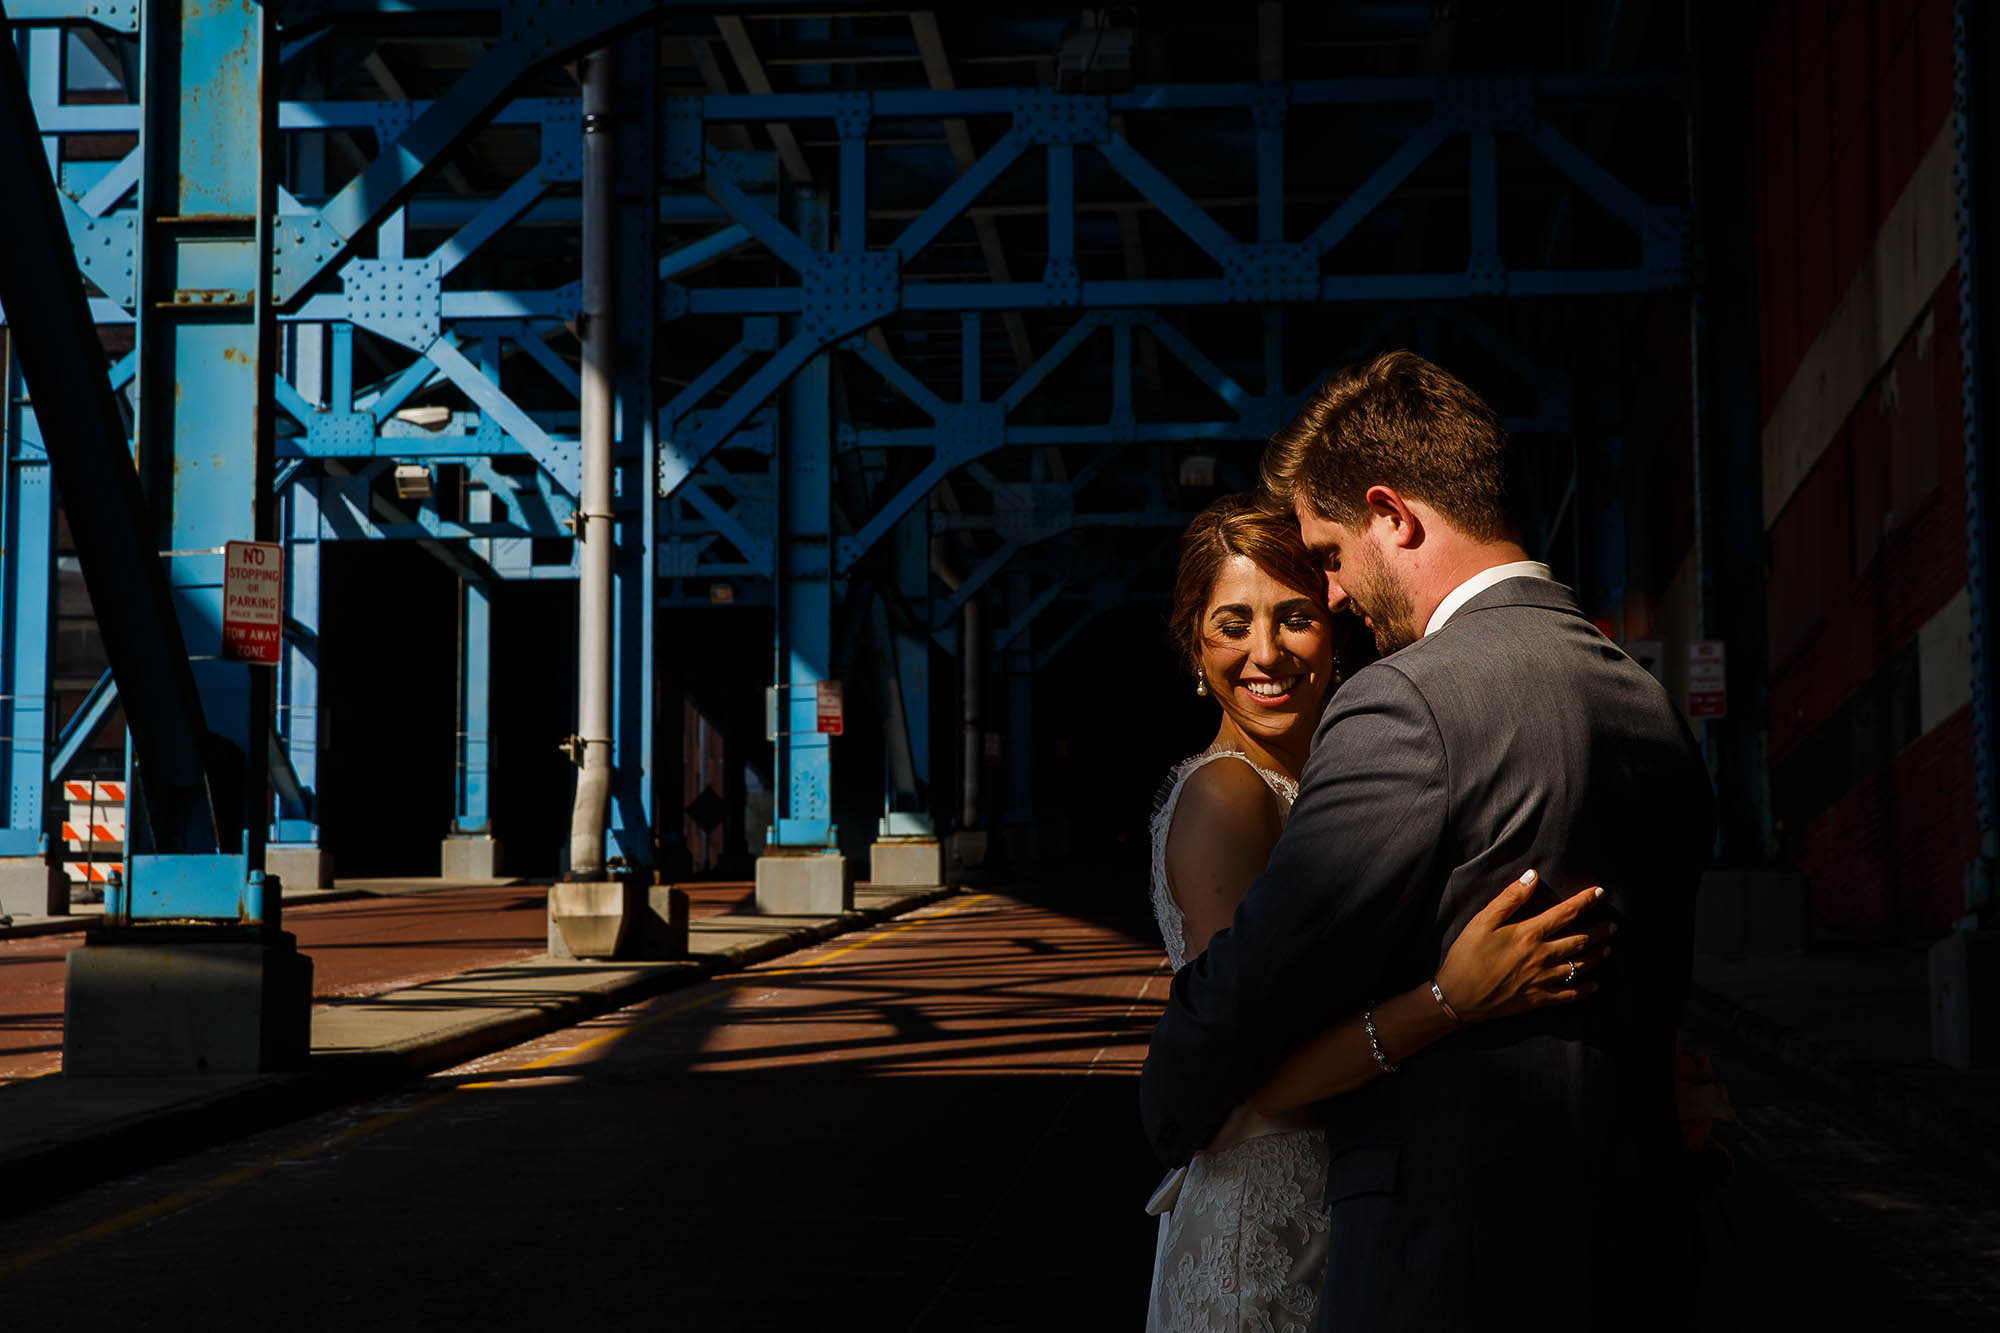 A bride and groom hug in the glow of the sun as they stand under one of the iconic blue steel bridges located in Downtown Cleveland, Ohio before heading off to their wedding reception.